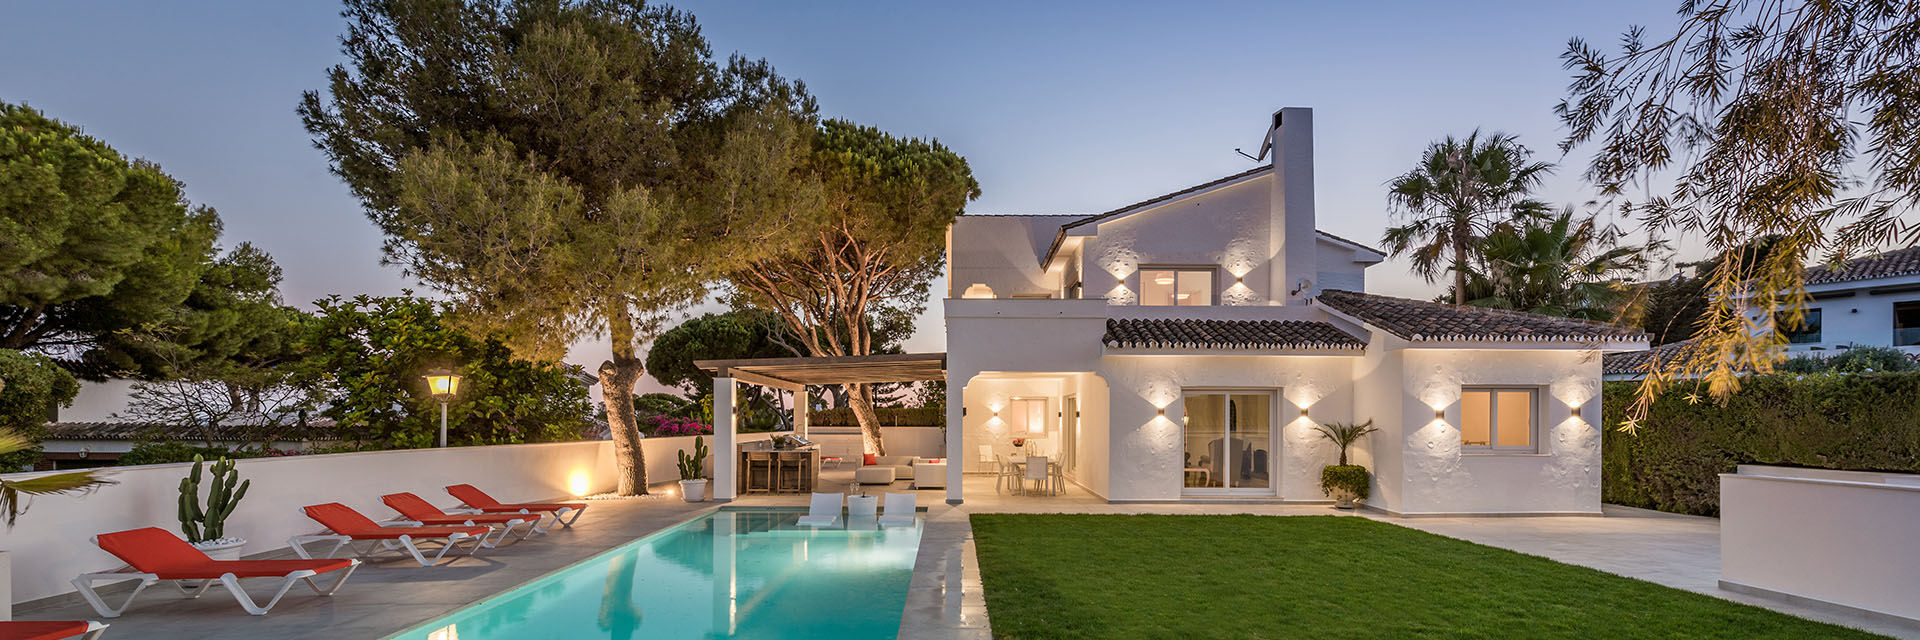 Stylish refurbished villa in Mijas with outdoor kitchen and pool chairs